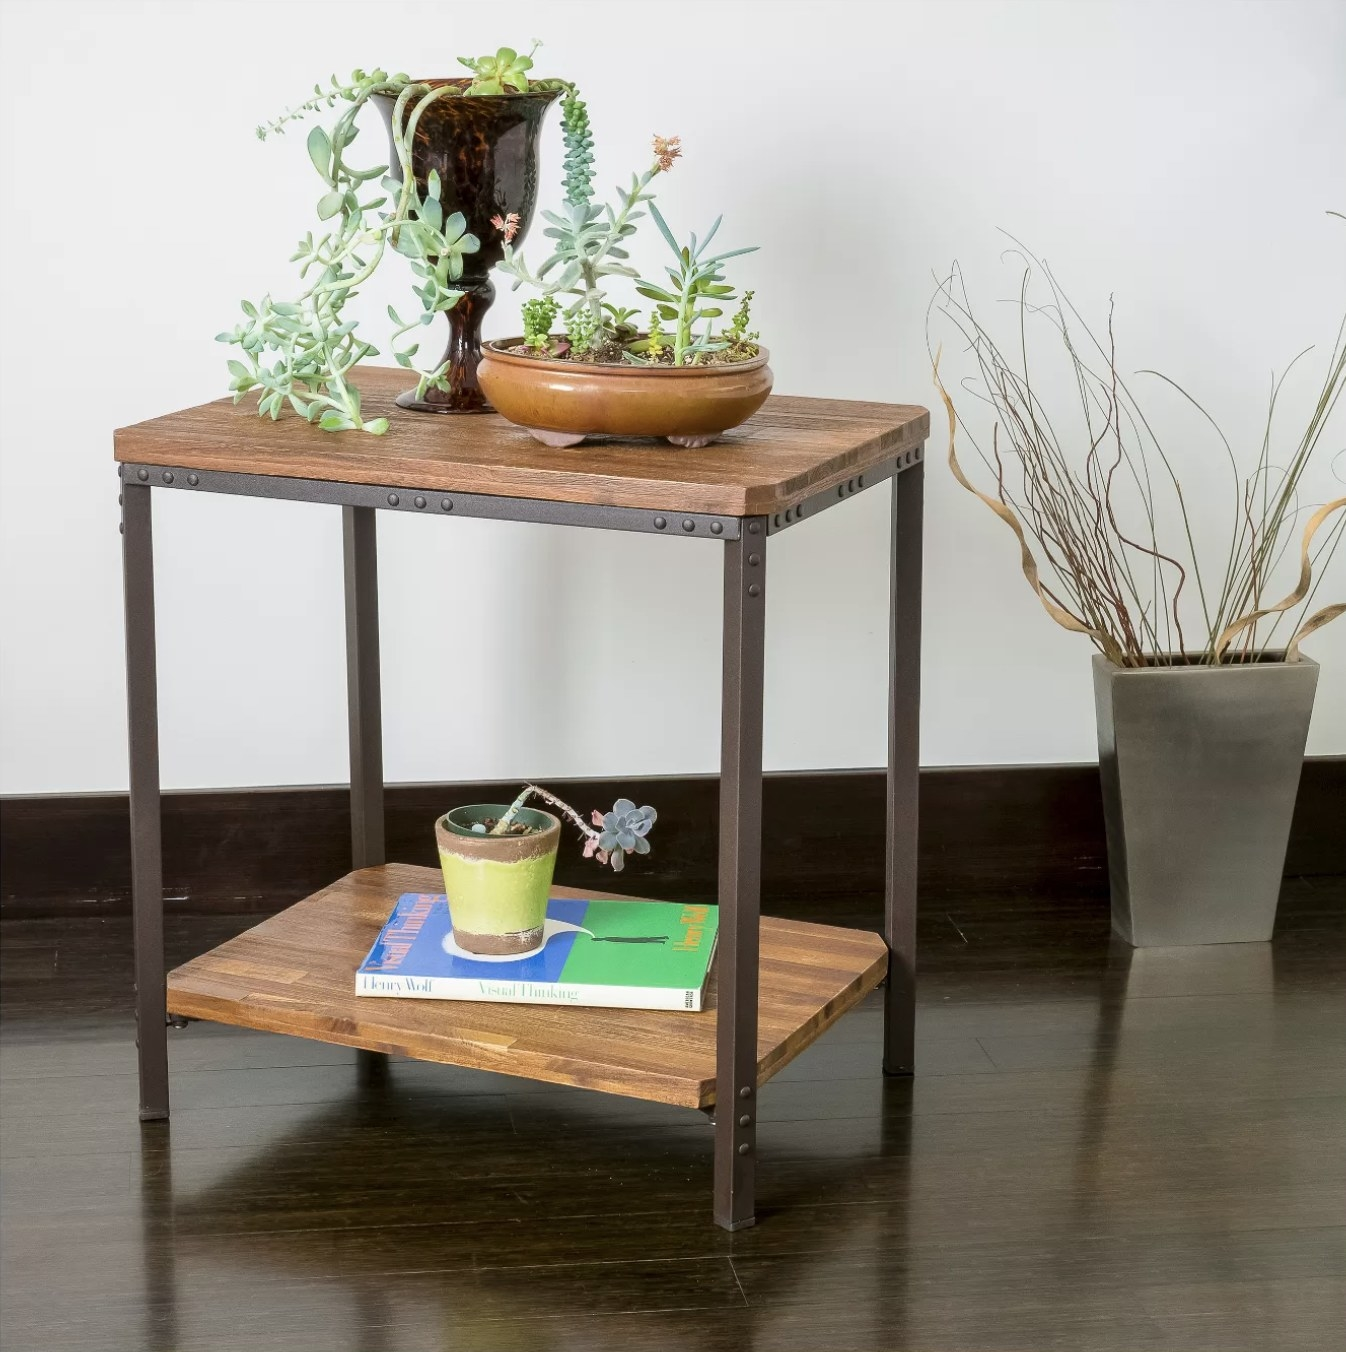 A rustic end table